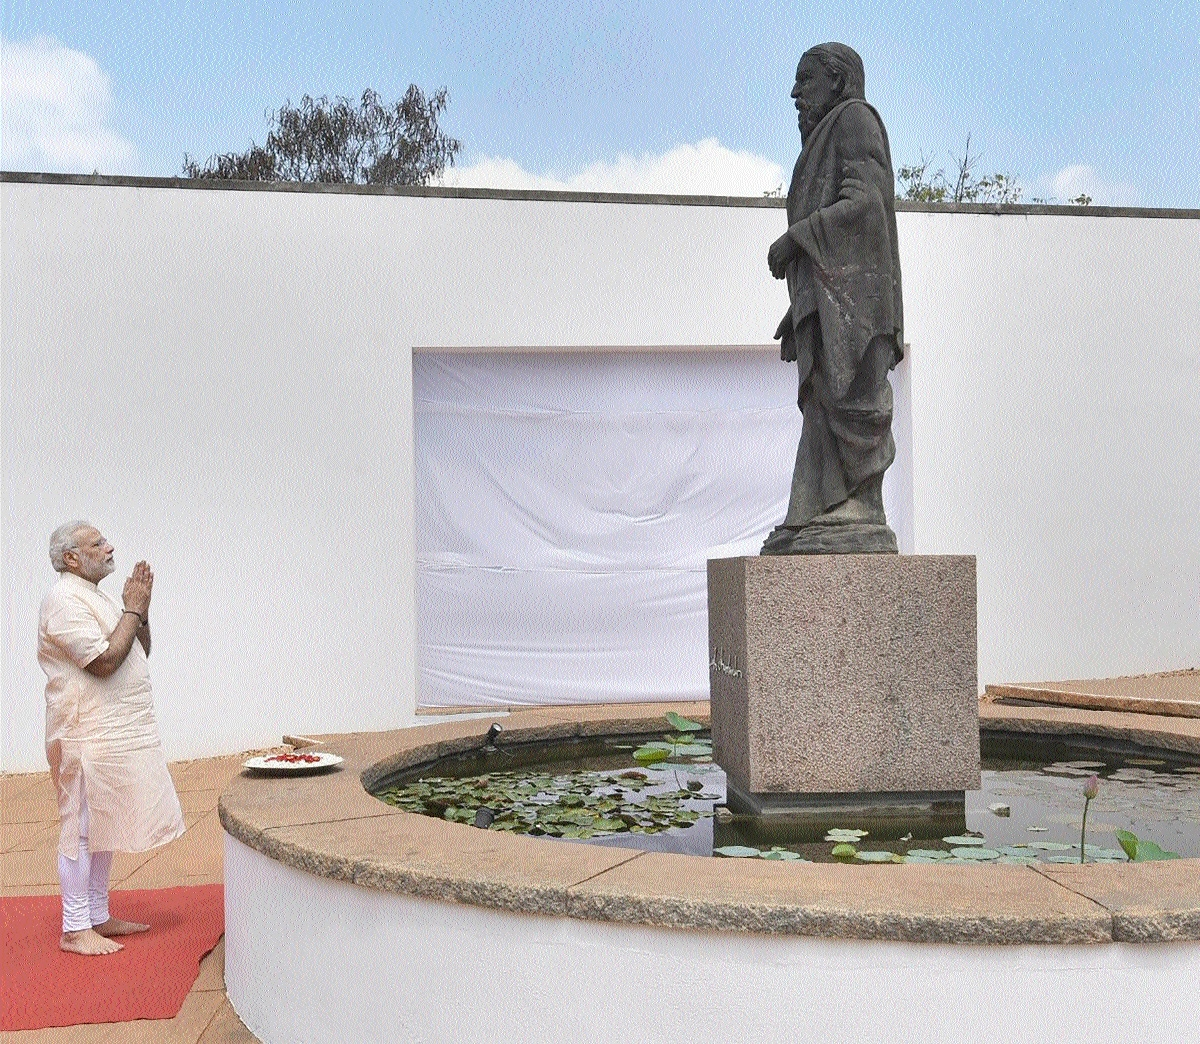 PM Narendra Modi paying homage at the statue of Sri Aurobindo in Puducherry